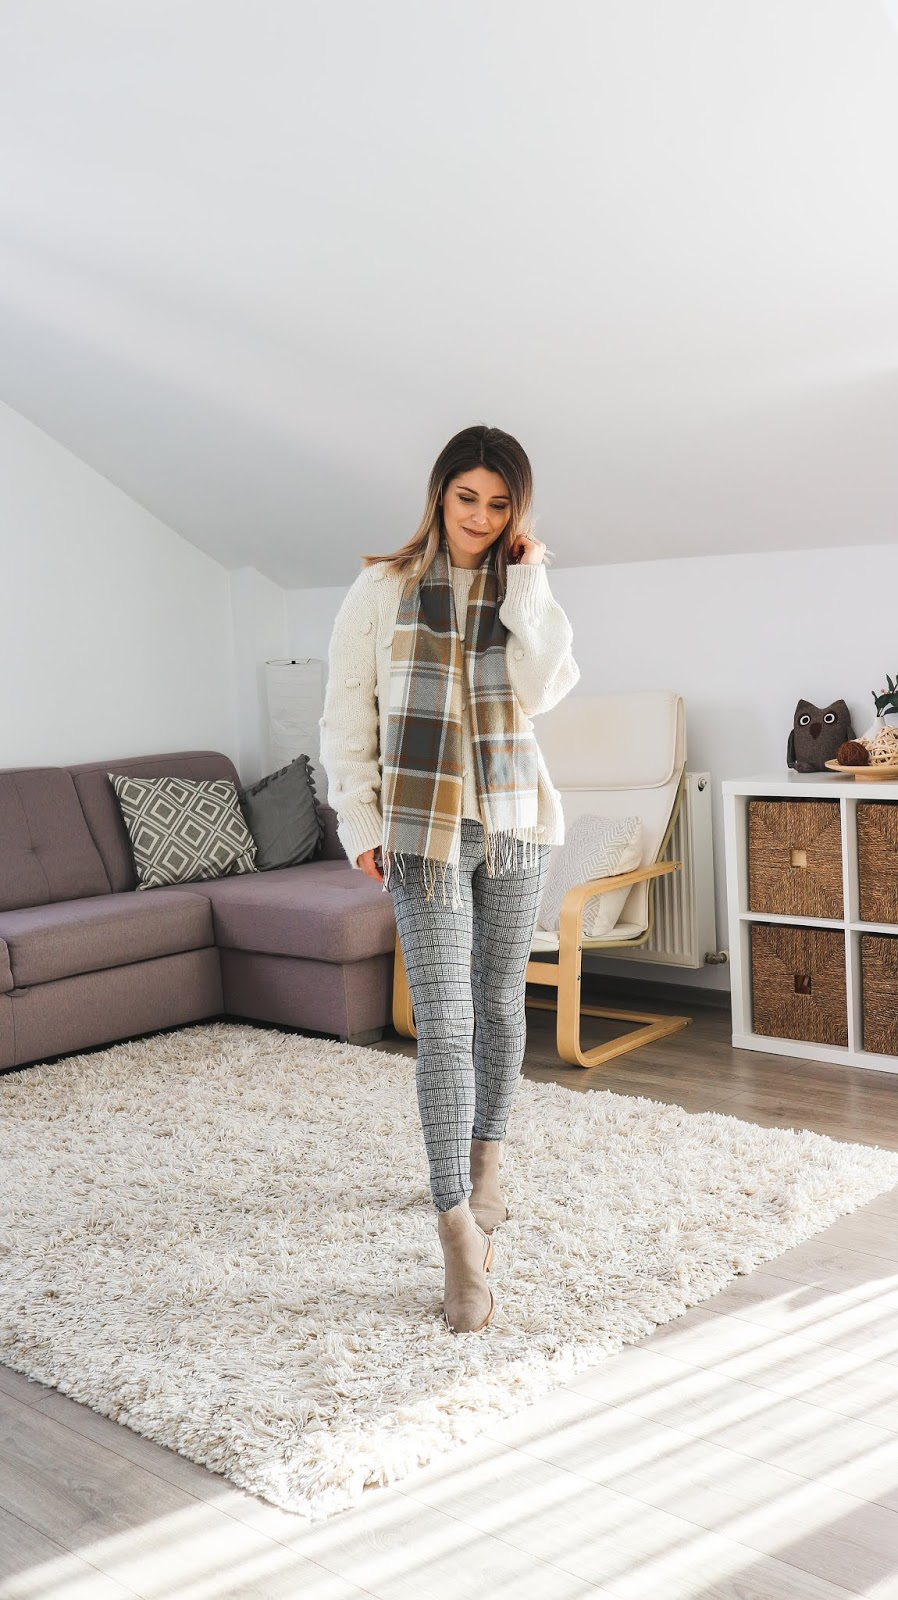 camel and grey toned outfit